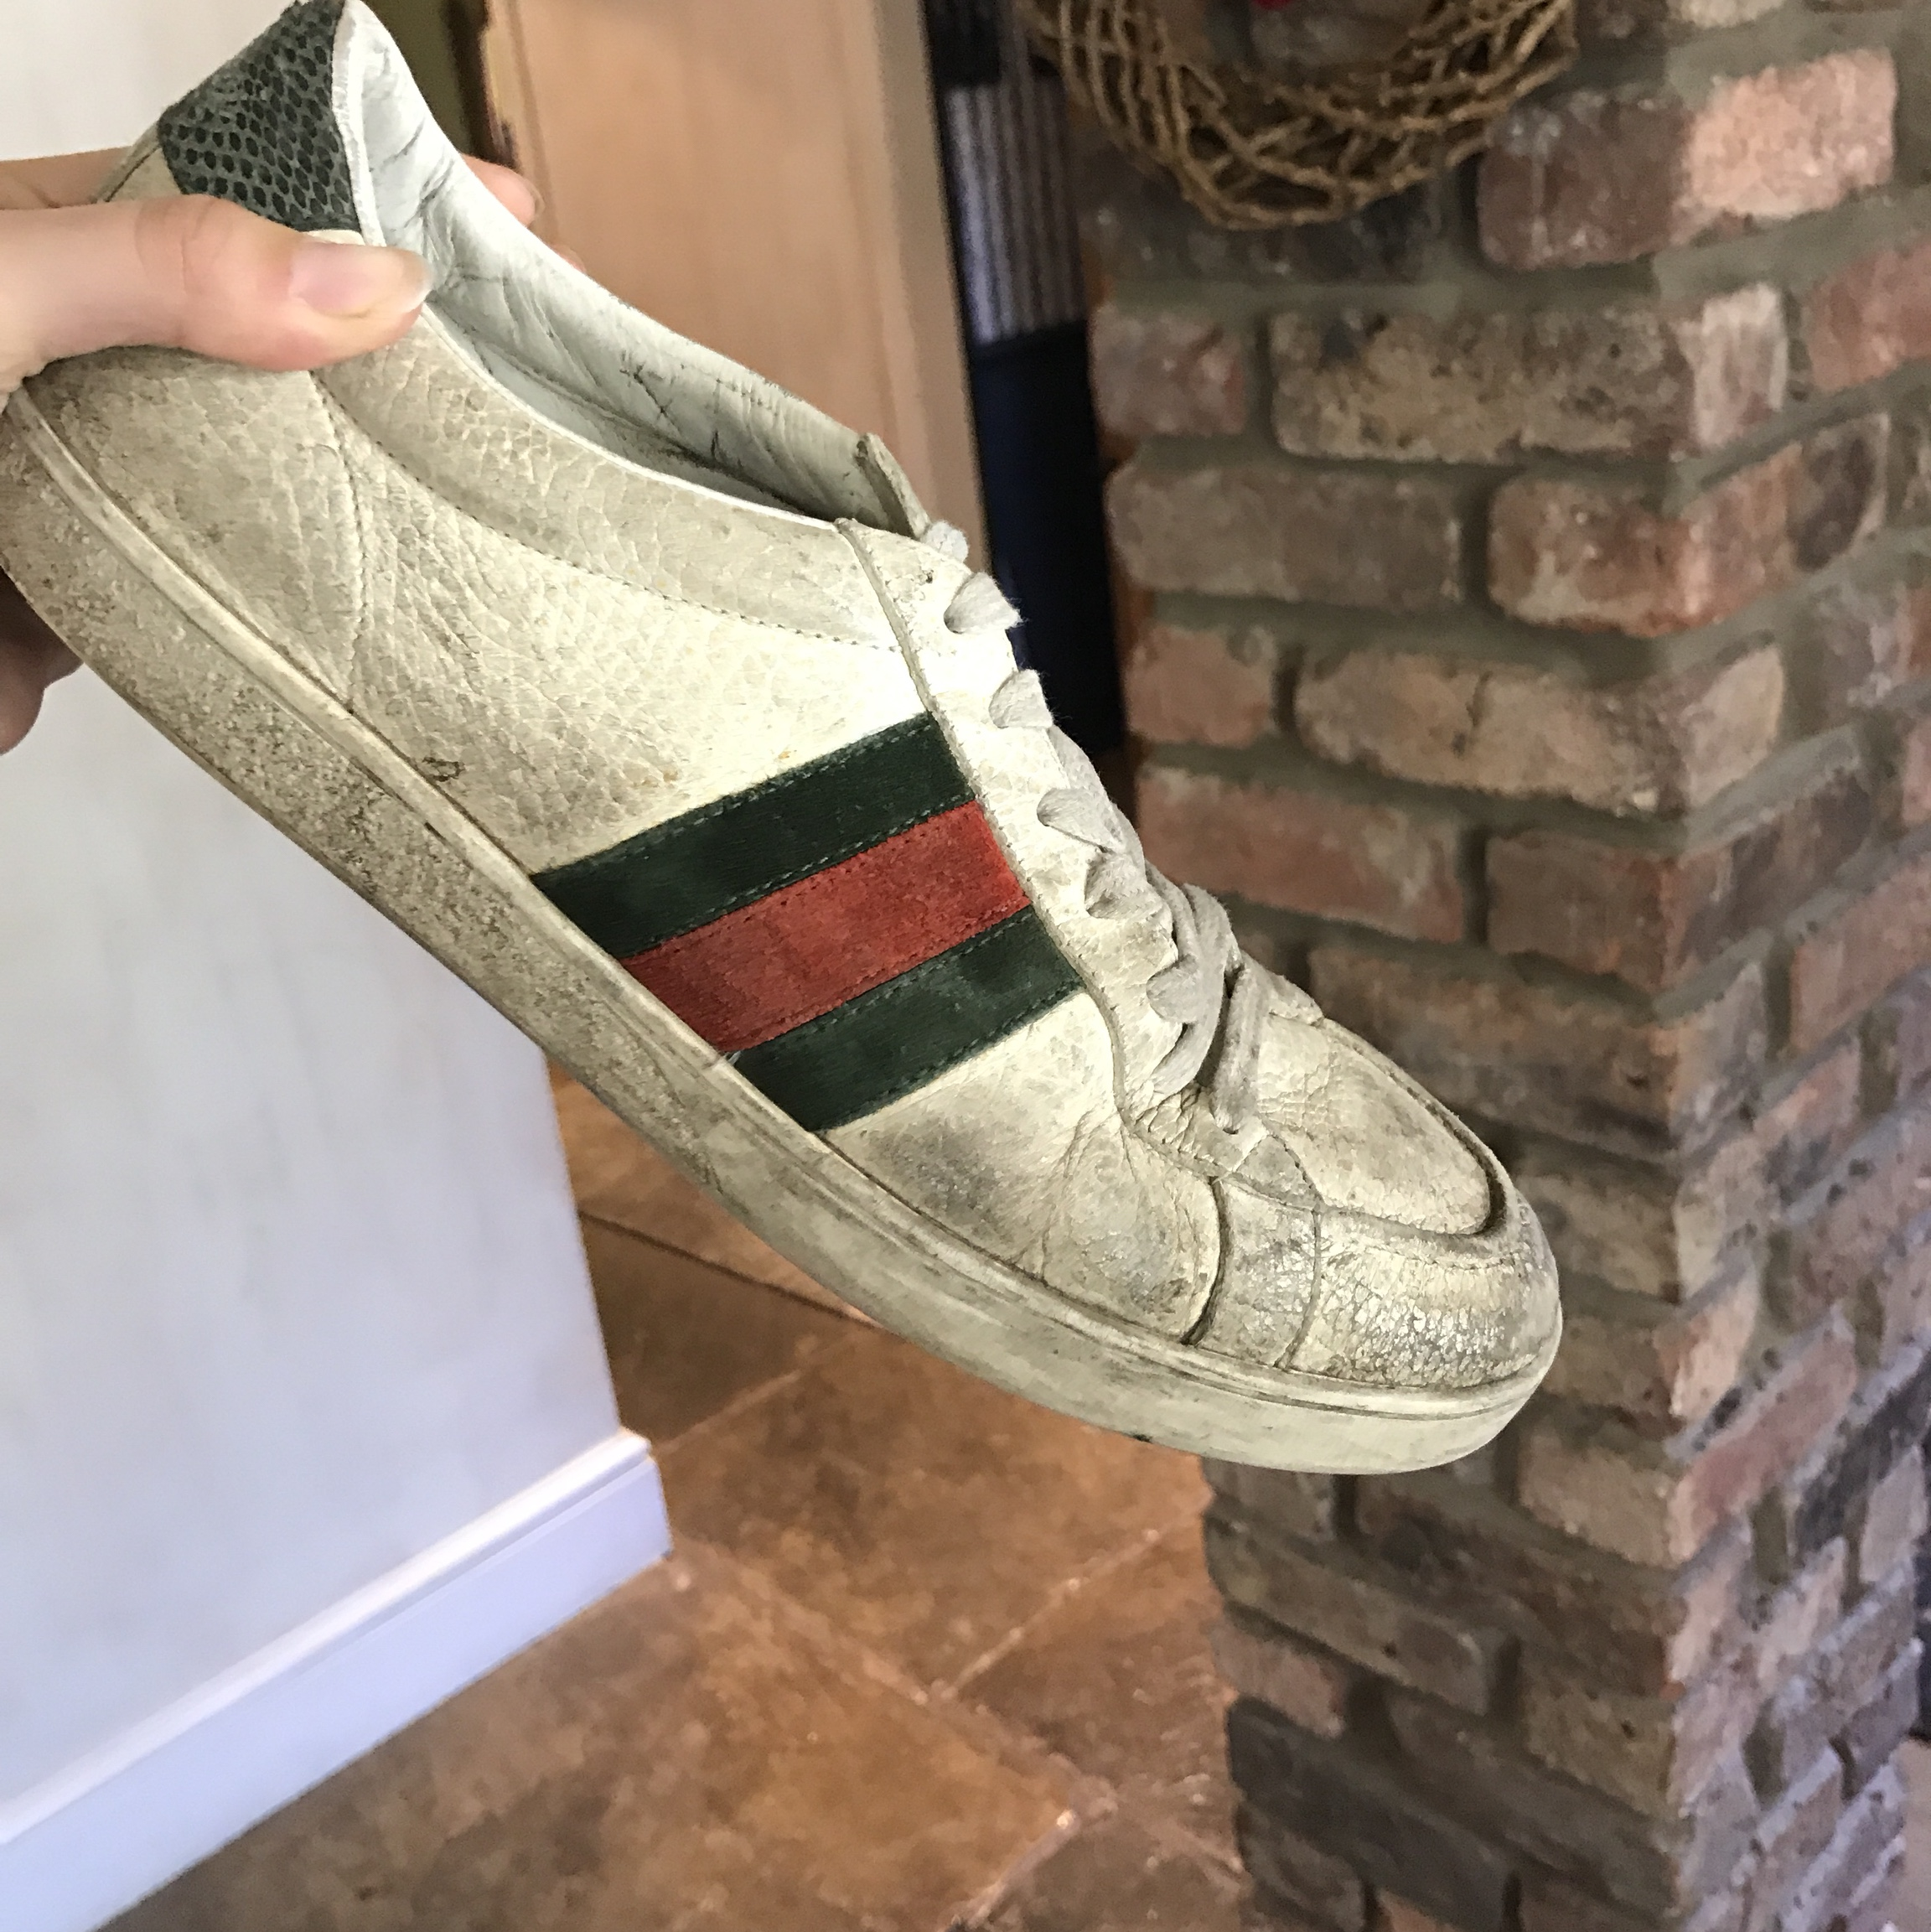 GUCCI trainers. Two years old. Need a